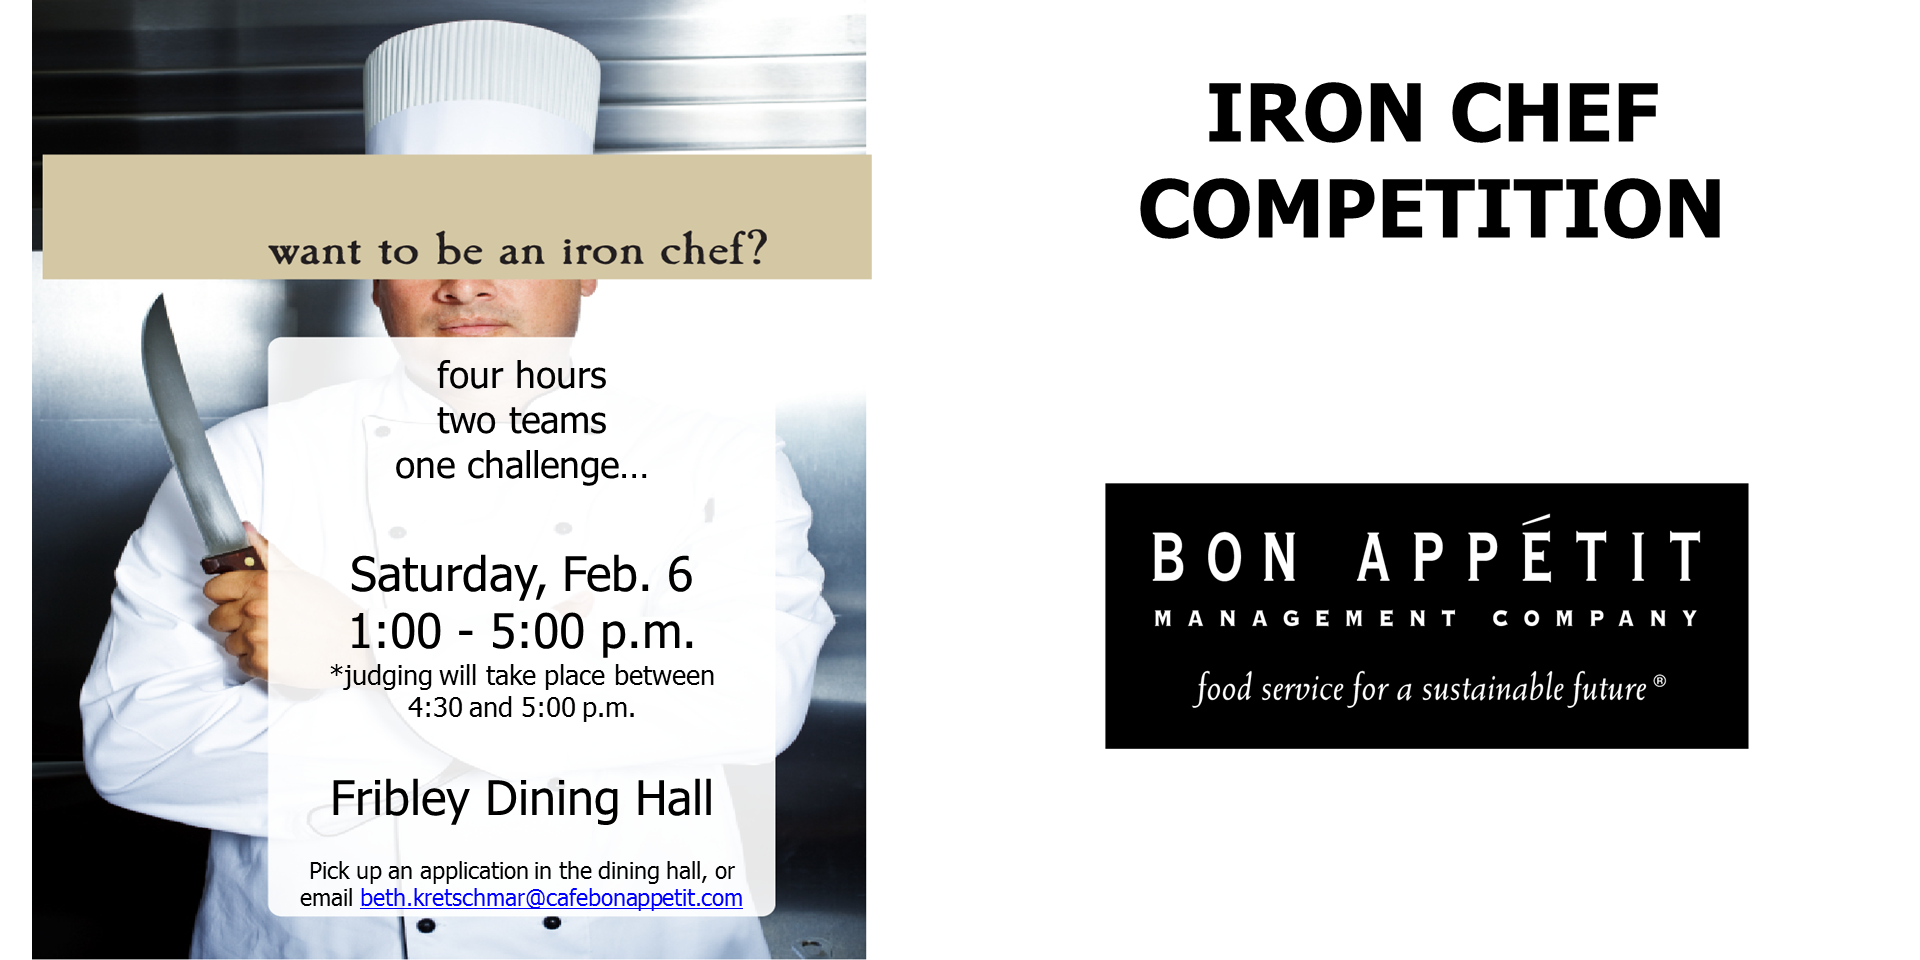 how to become an iron chef